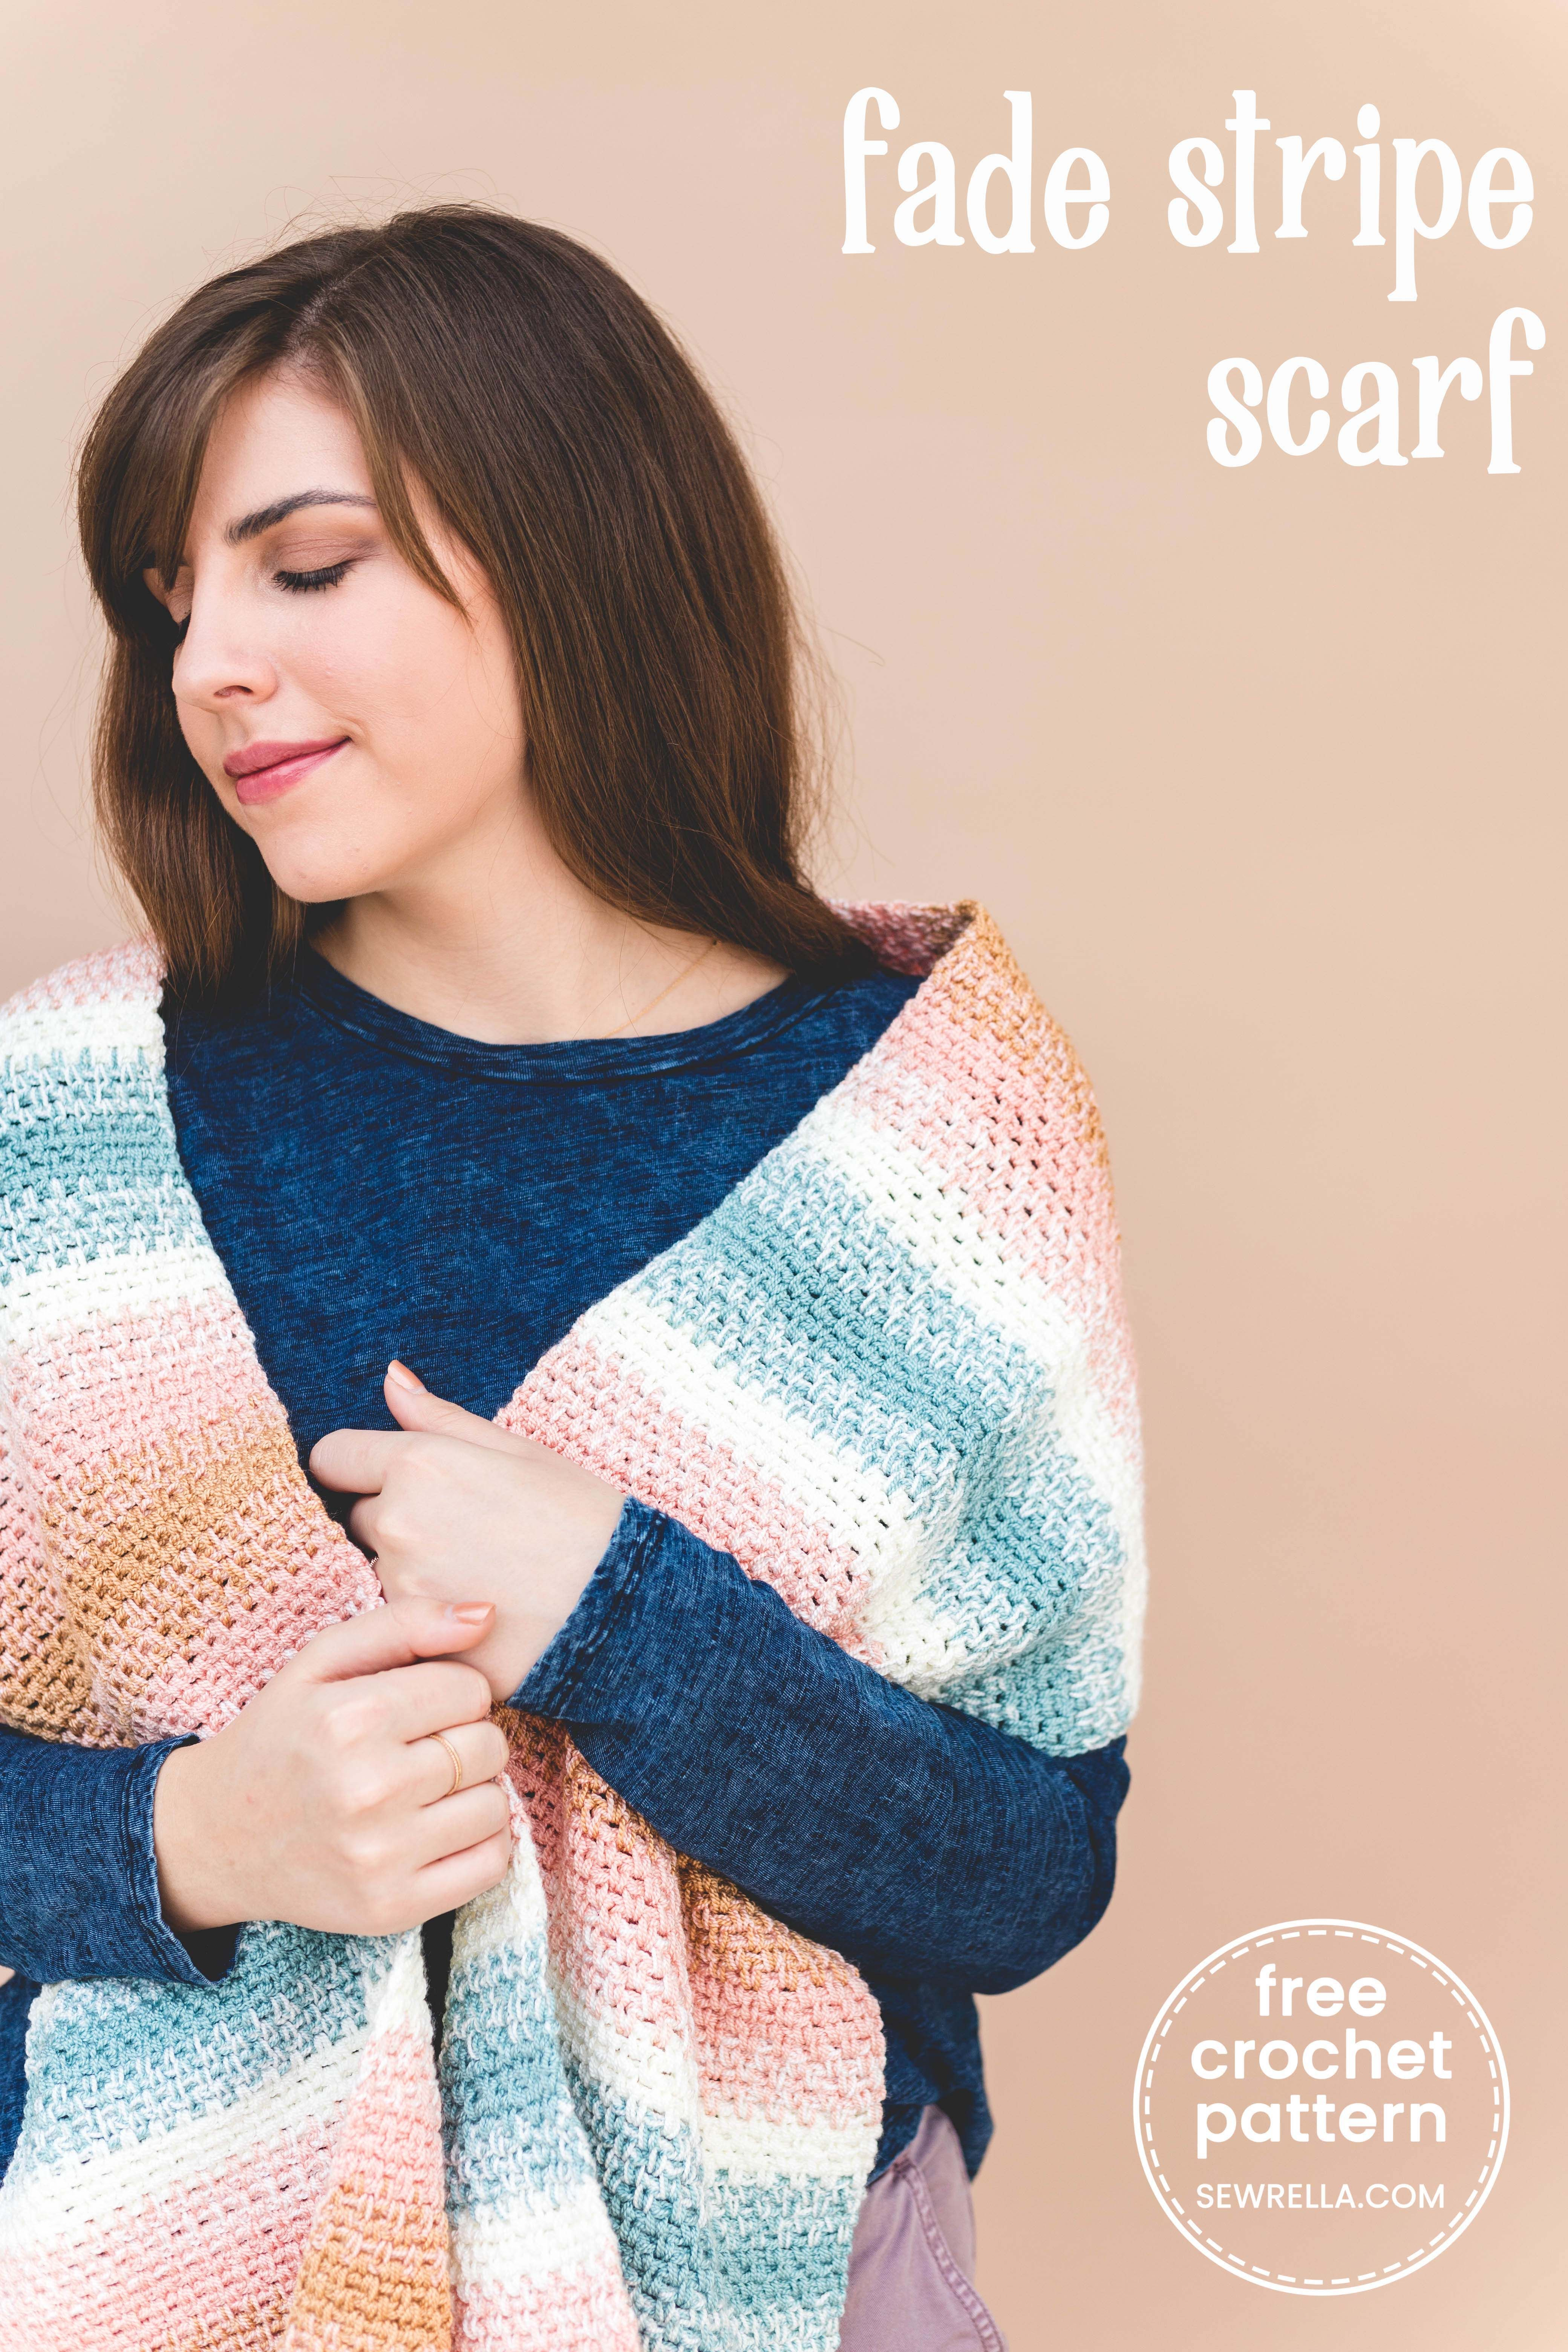 Crochet Fade Into You Scarf Free Crochet Patterns From My Favorite